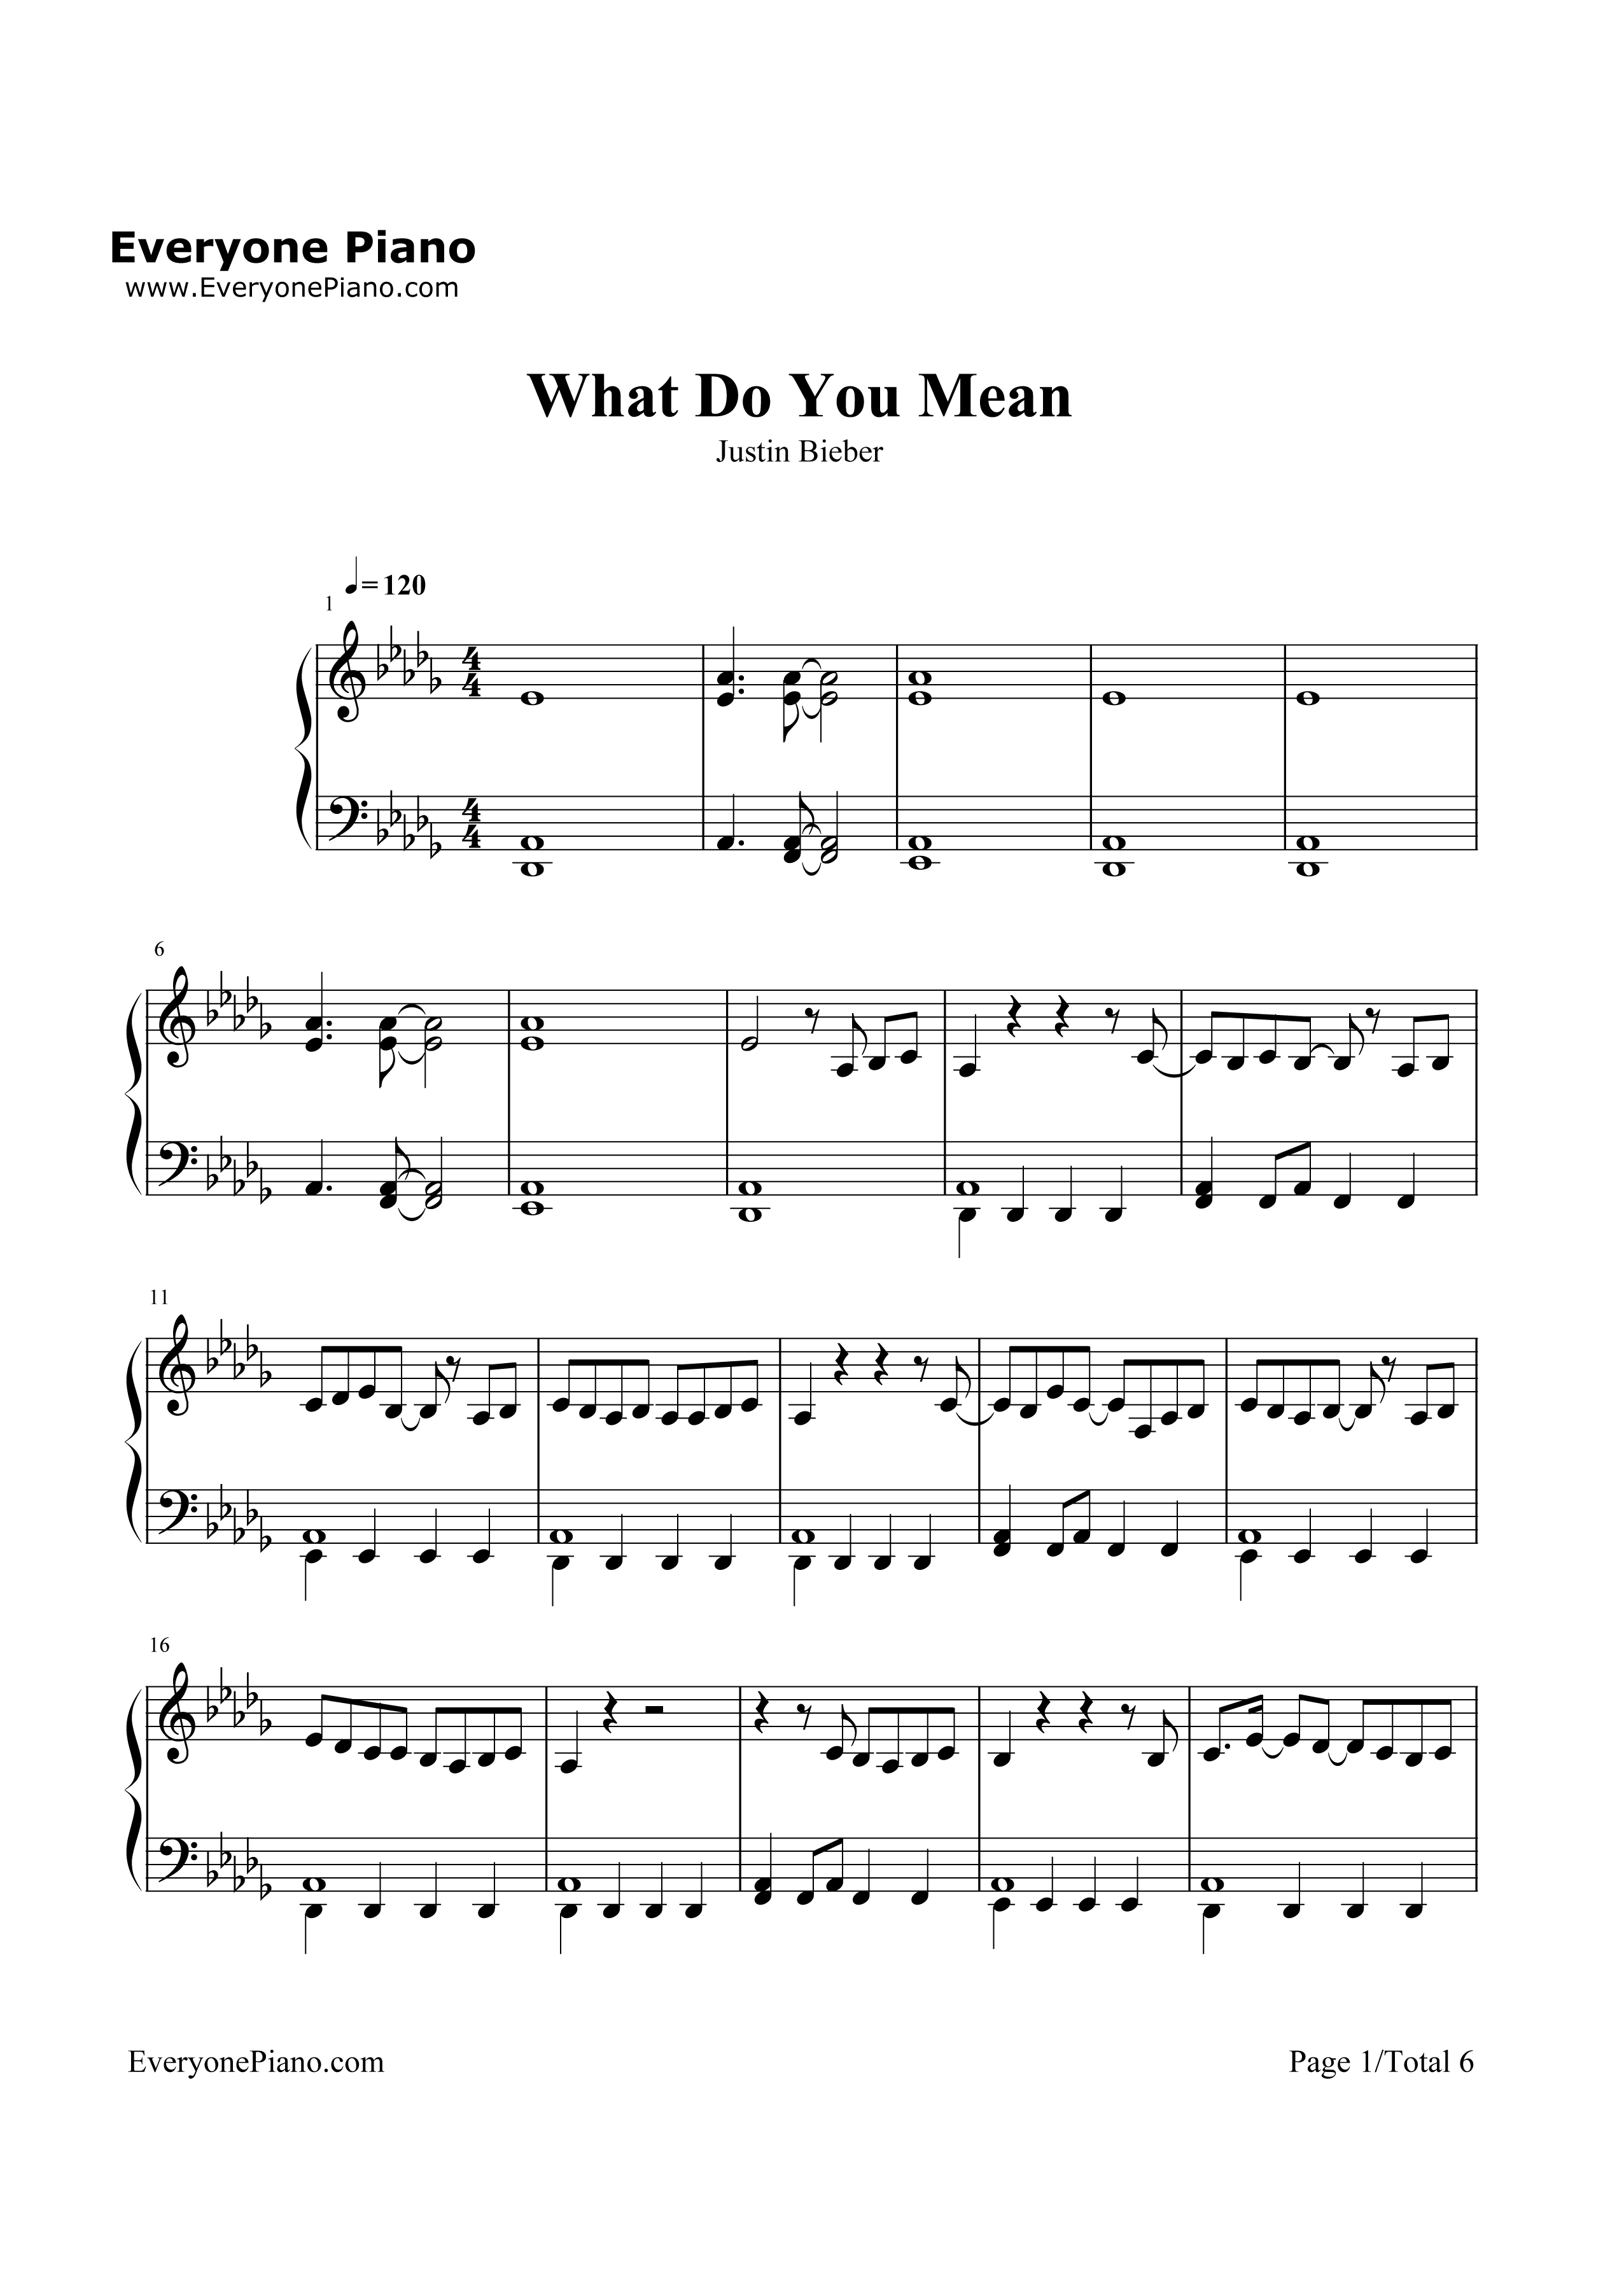 What Do You Mean-Justin Bieber Stave Preview 1-Free Piano Sheet Music u0026 Piano Chords